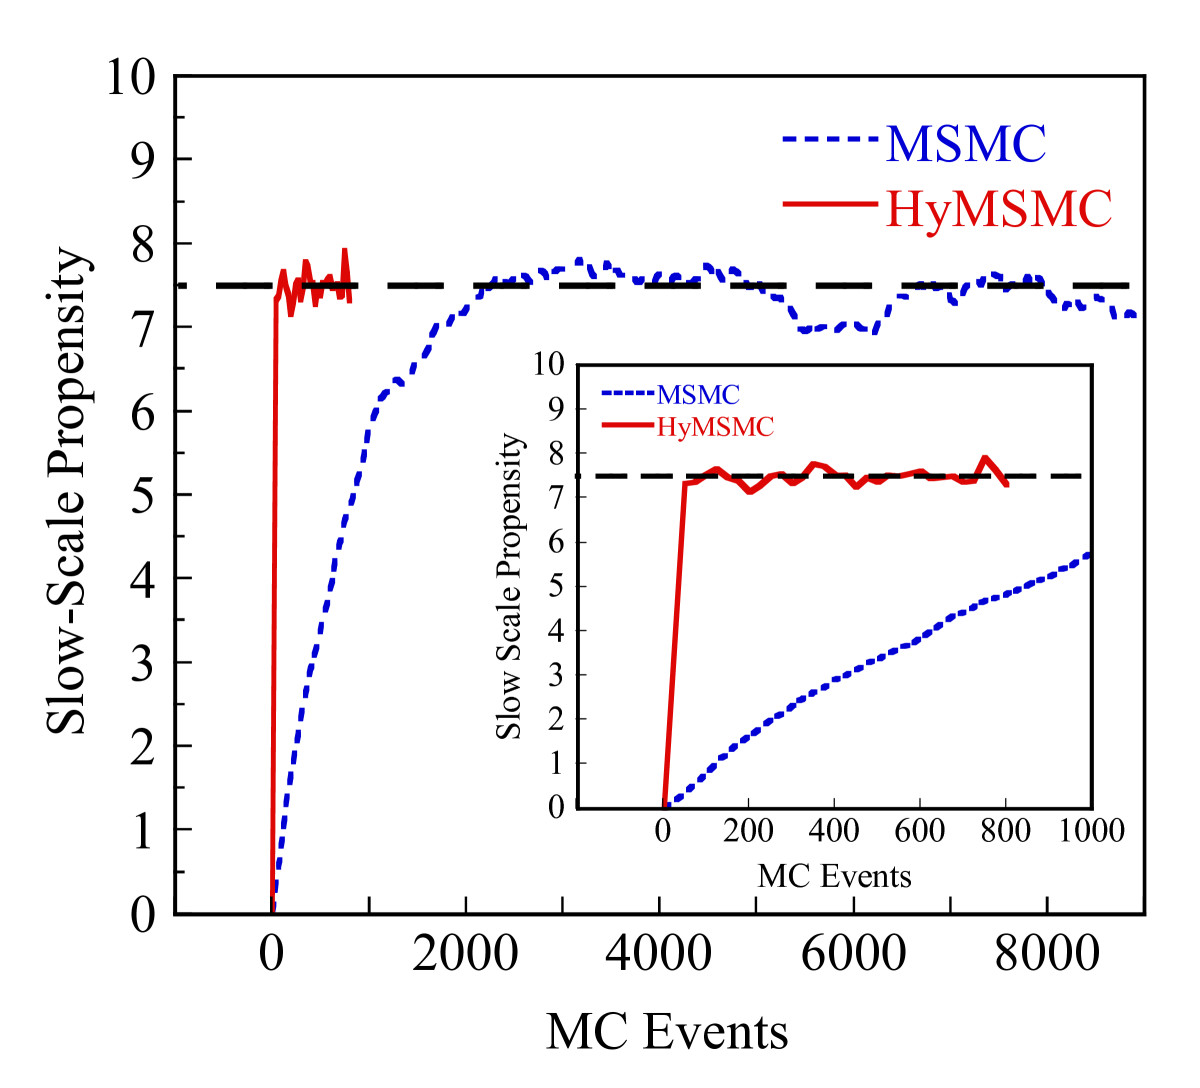 http://static-content.springer.com/image/art%3A10.1186%2F1471-2105-8-175/MediaObjects/12859_2007_Article_1547_Fig6_HTML.jpg